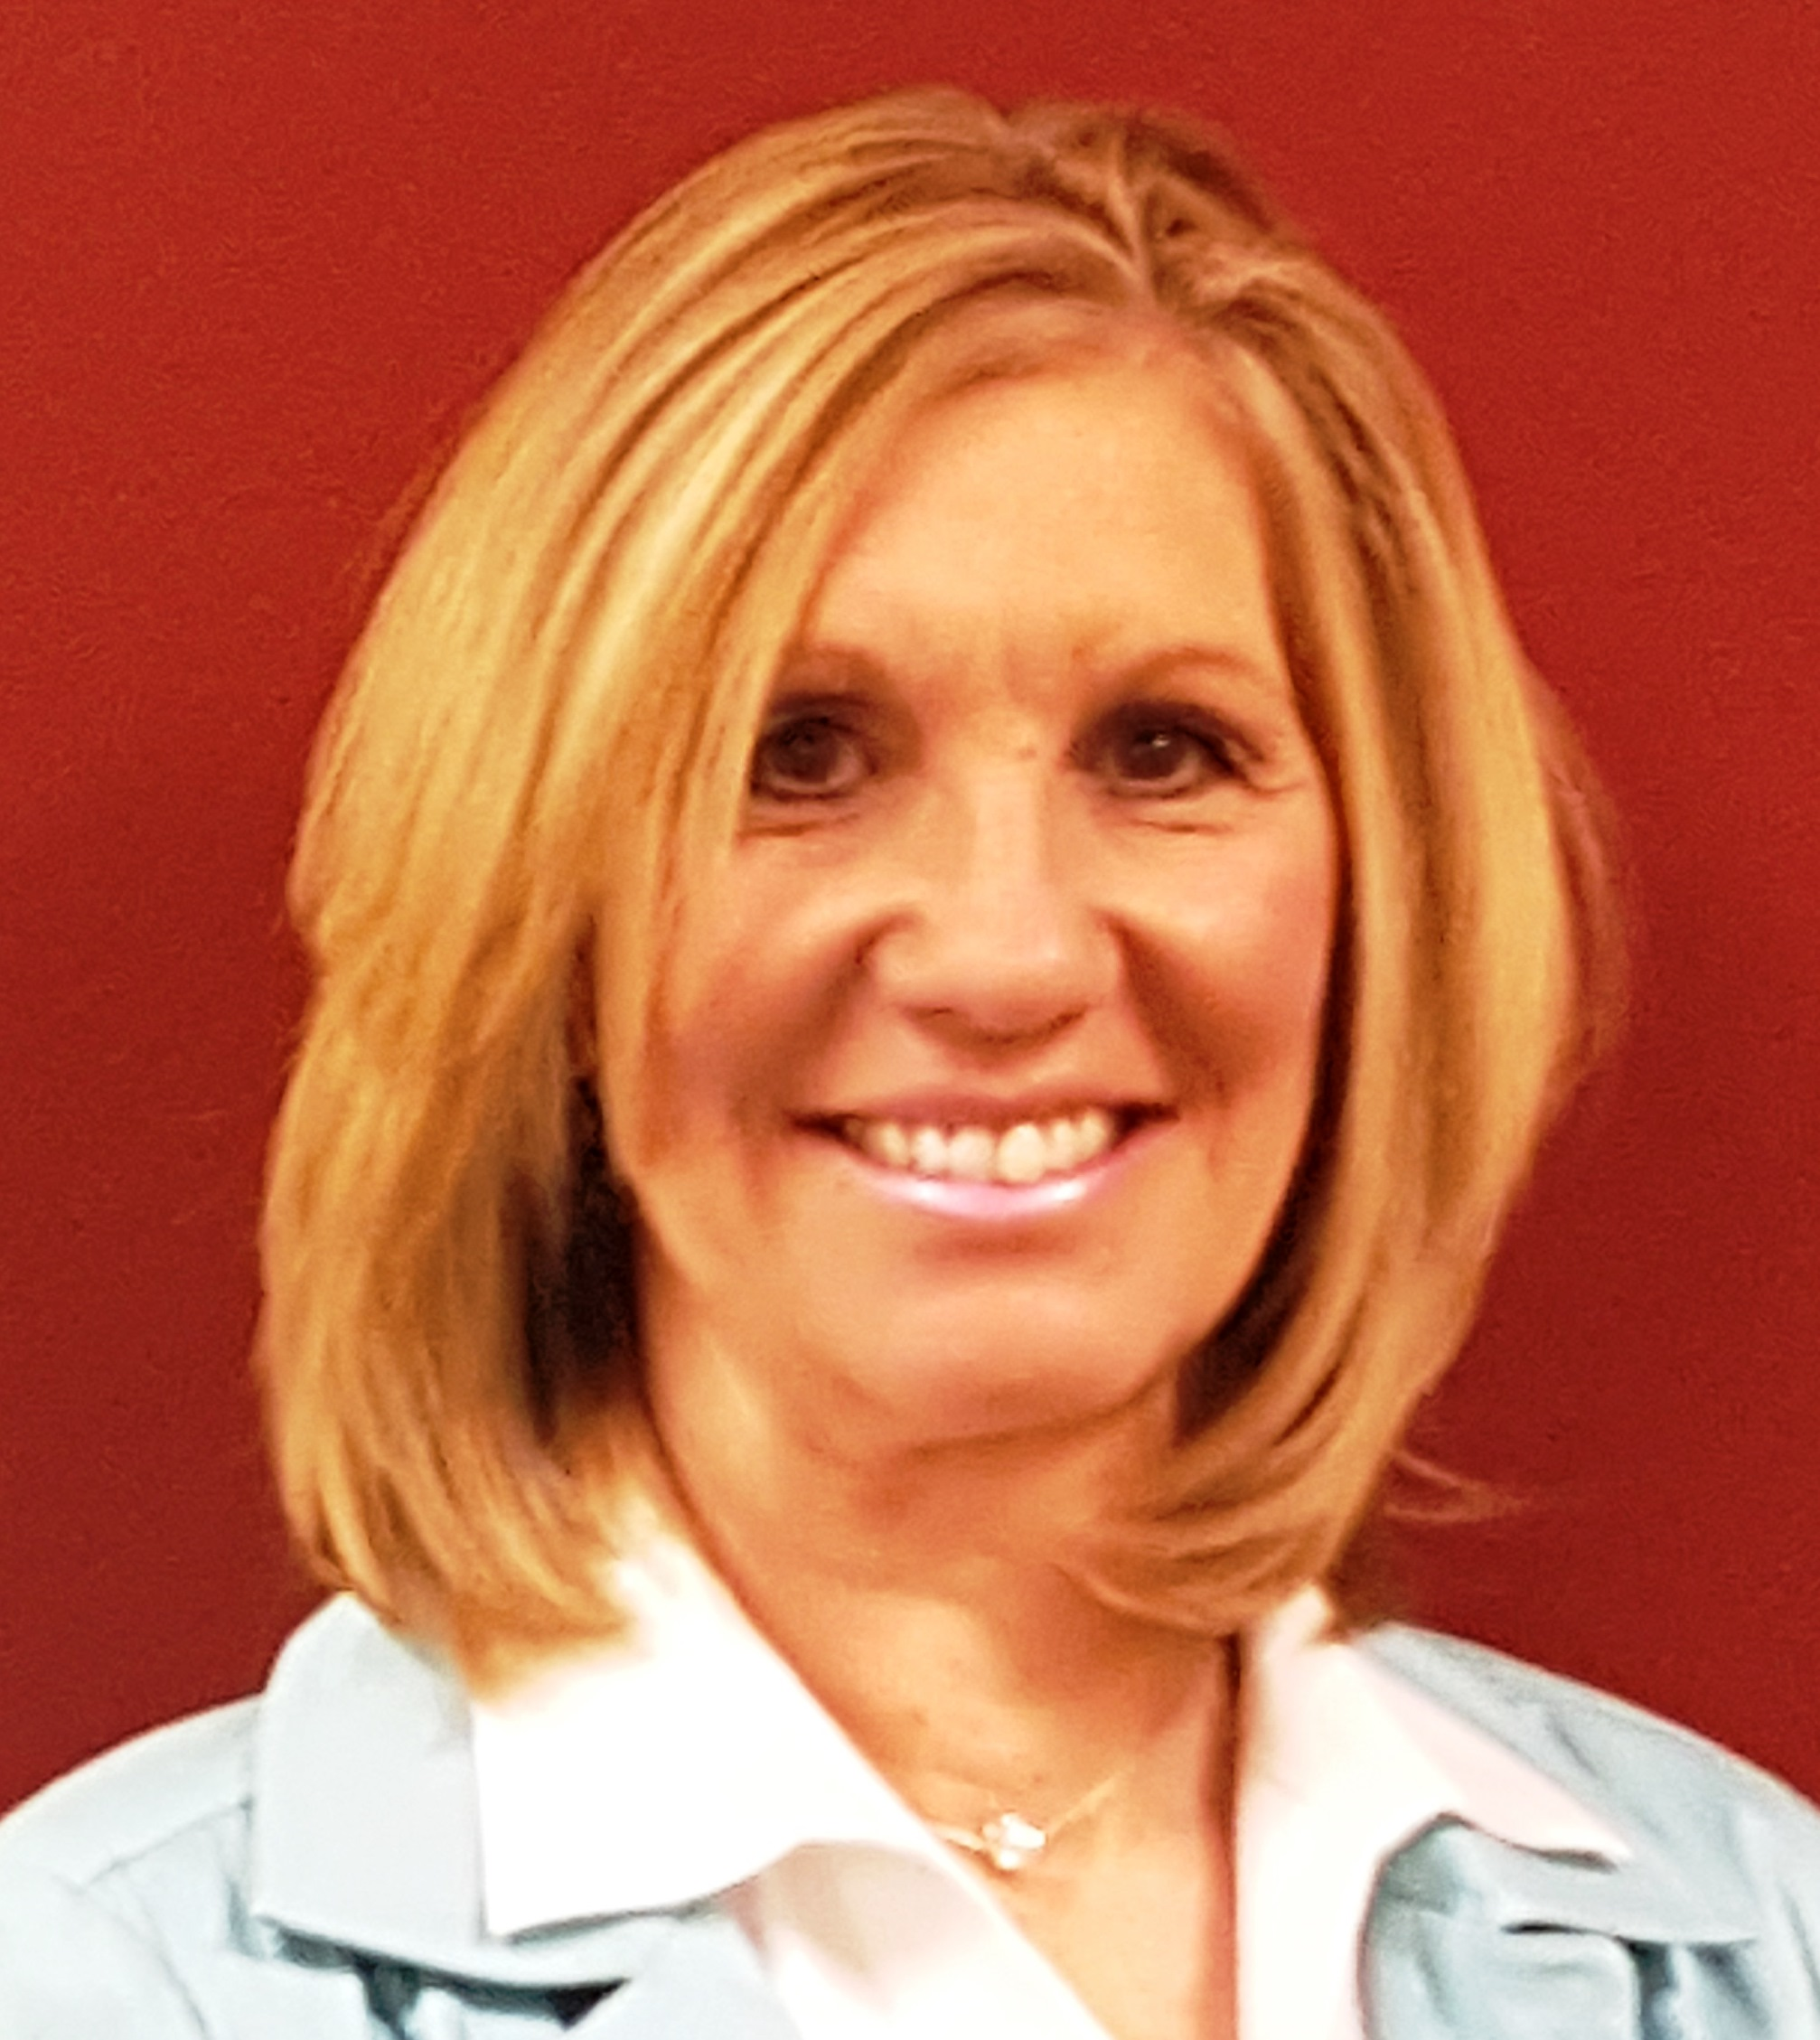 Professional Physical Therapy Expands Into New Patient